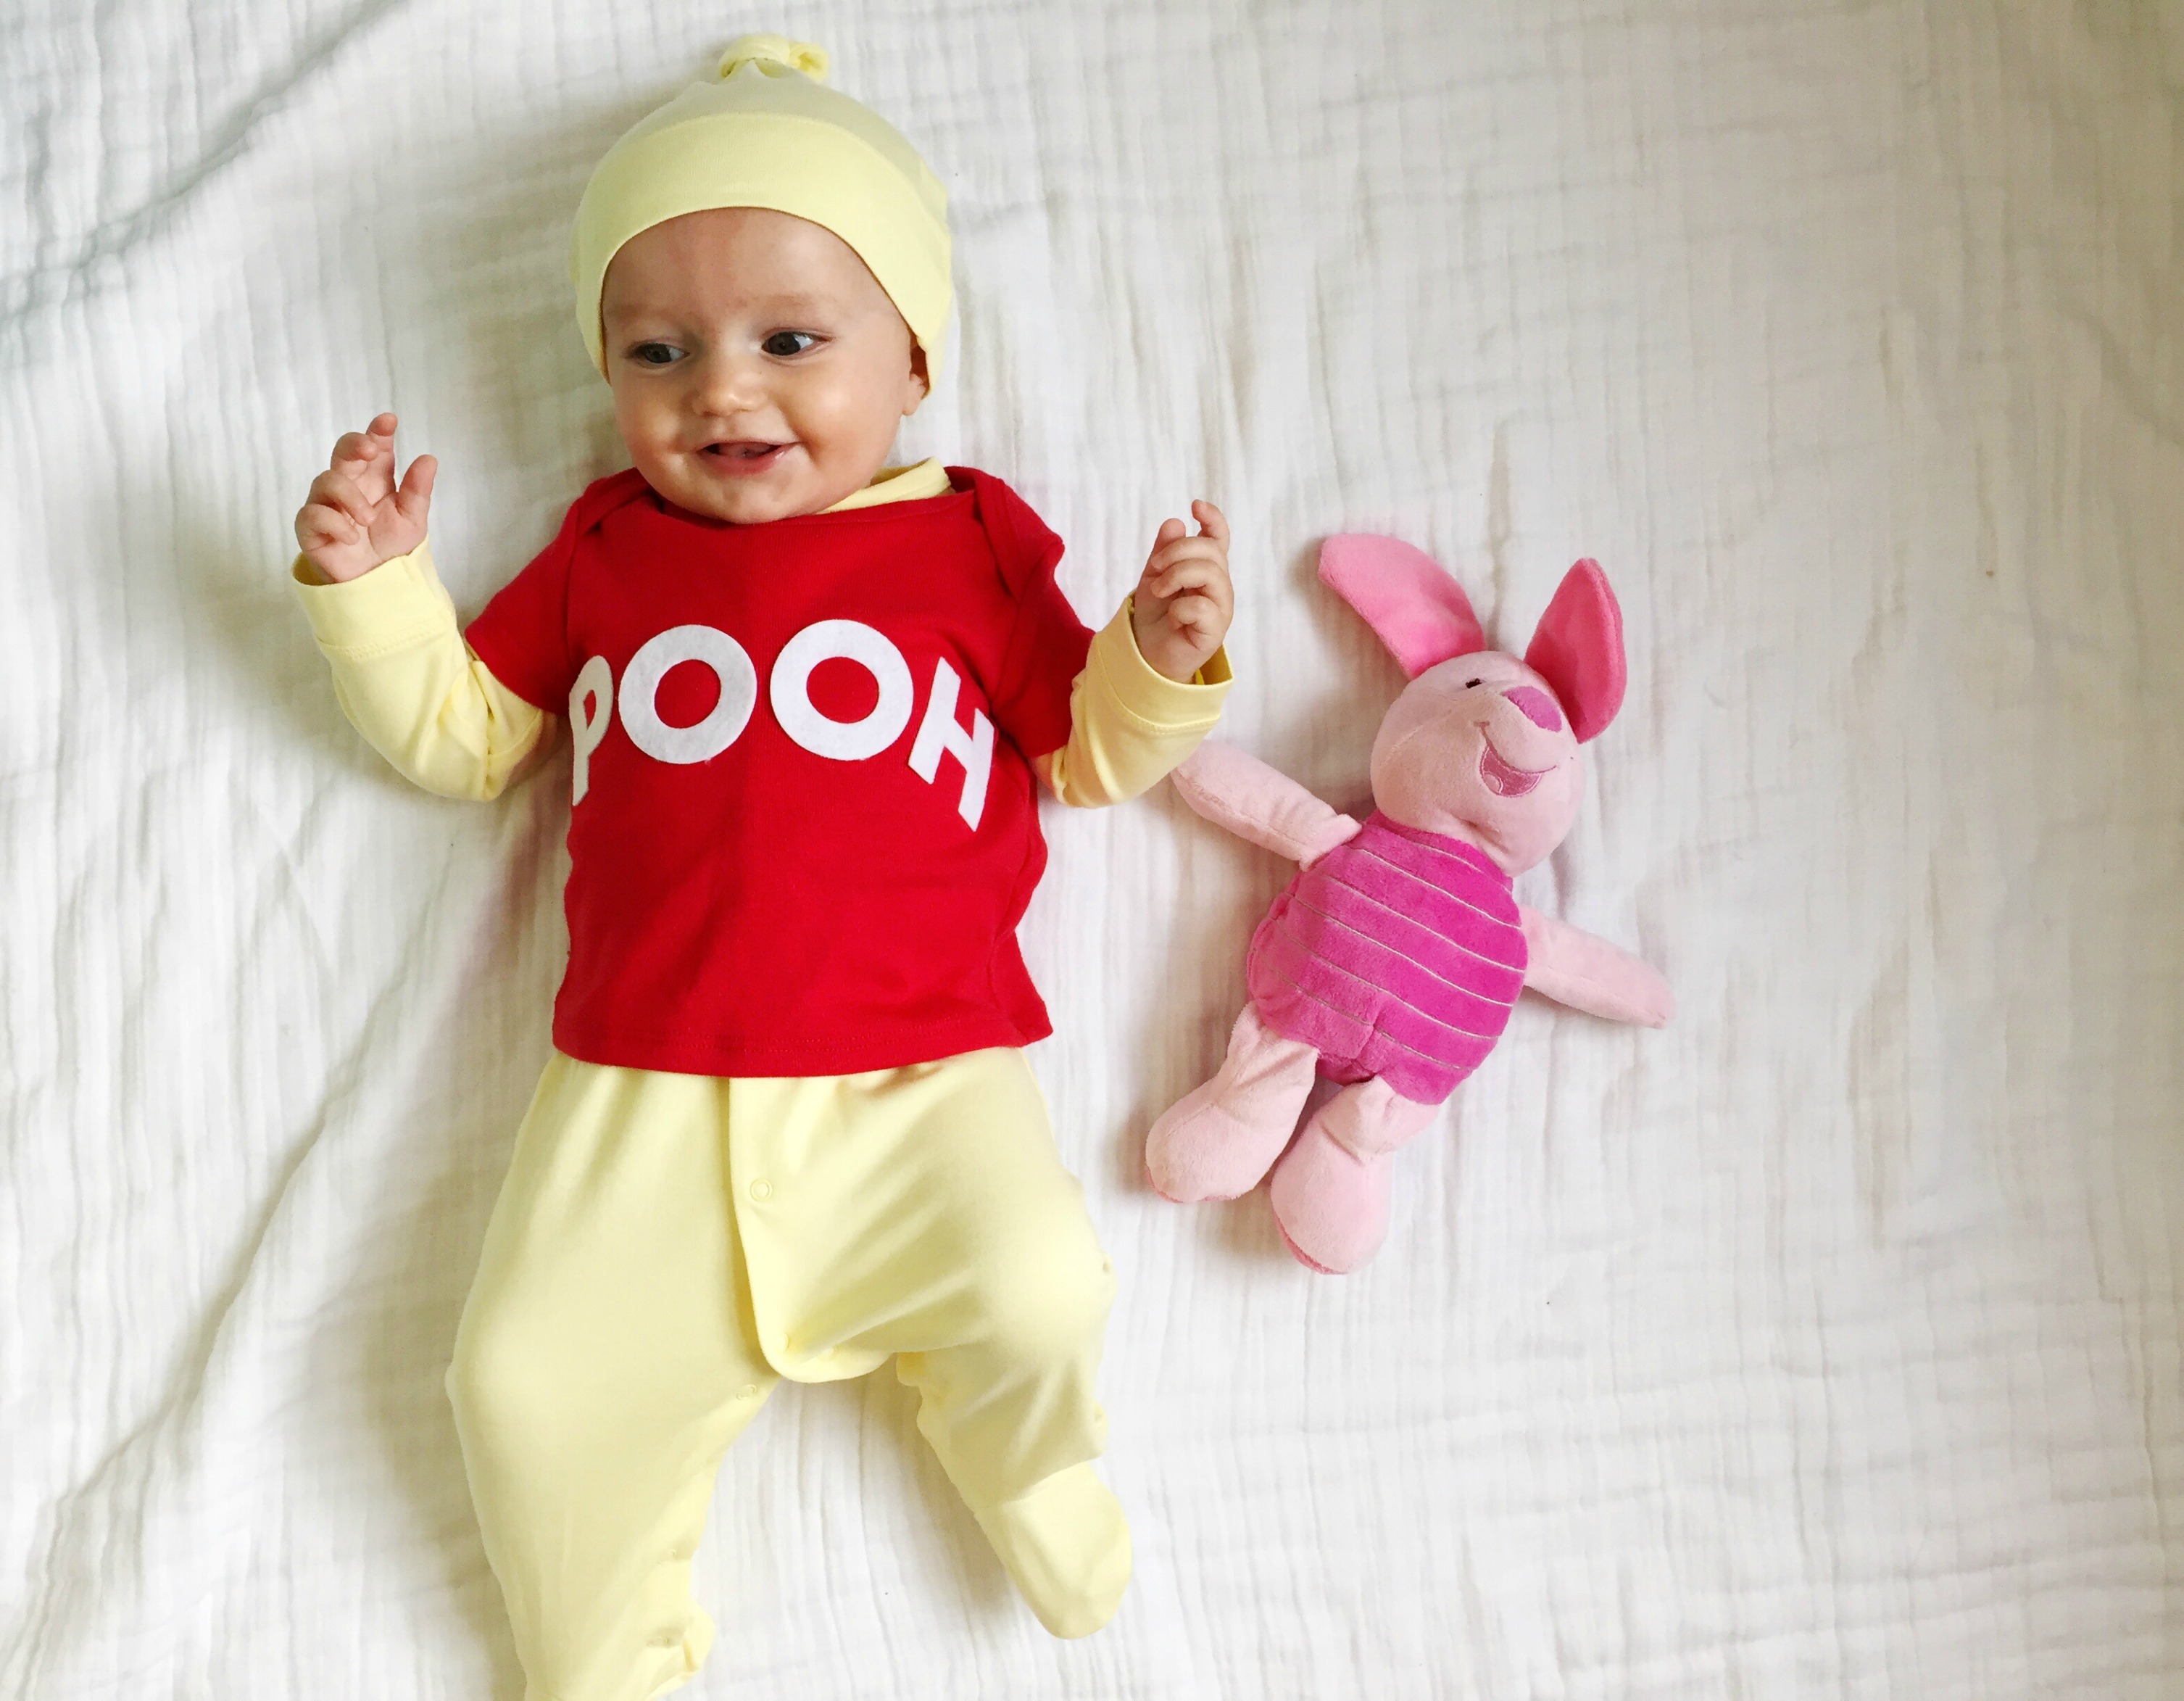 5 easy diy halloween costumes for baby - the chirping moms